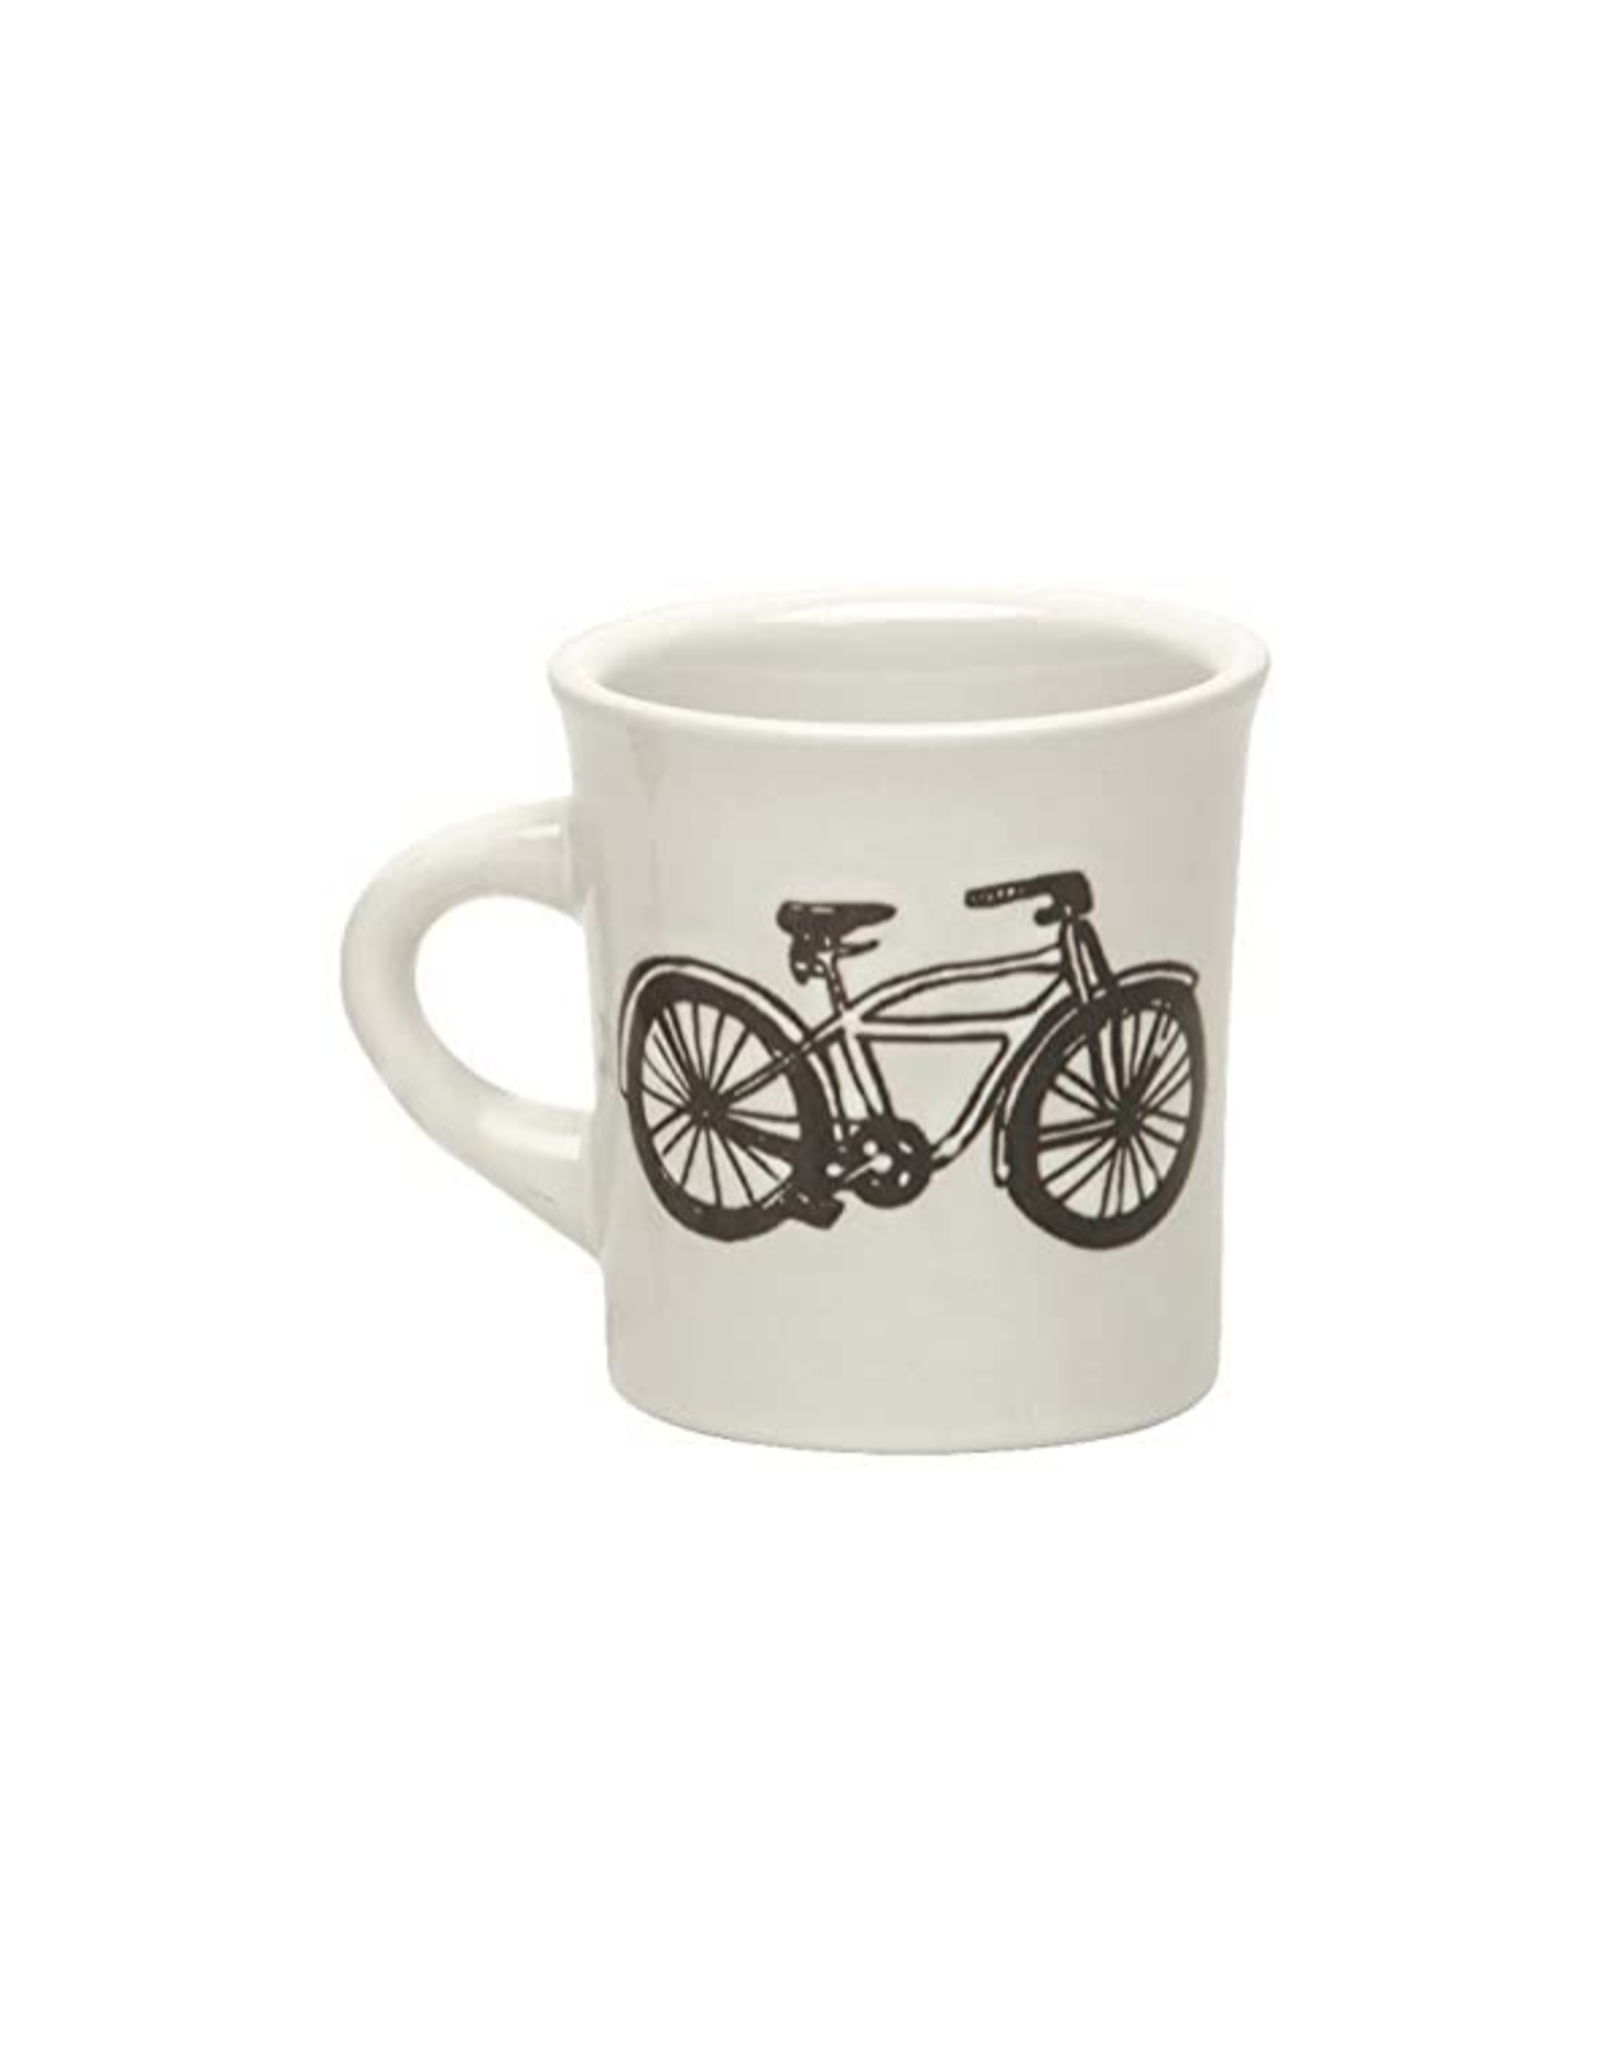 ORE Originals Cuppa This Cuppa Mug, Classic Bike